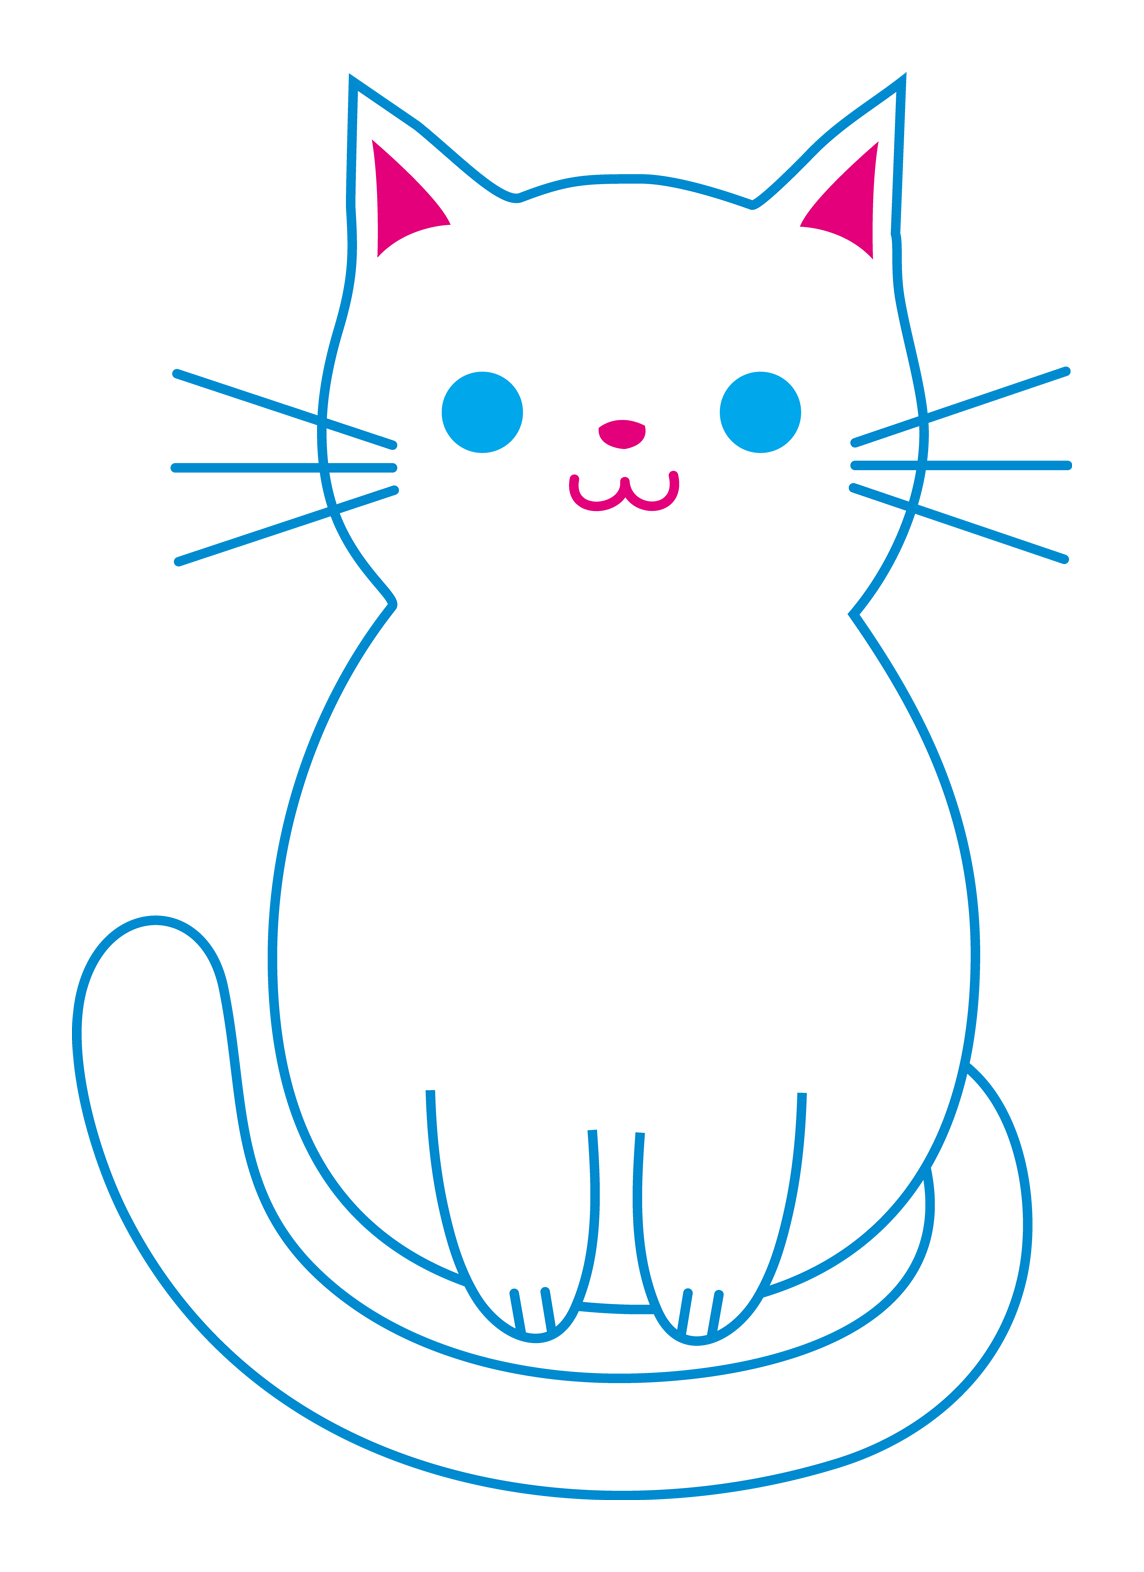 Cartoon cat sitting clipart clip art free stock Clip Art Transparent Background & Clip Art Transparent Background ... clip art free stock